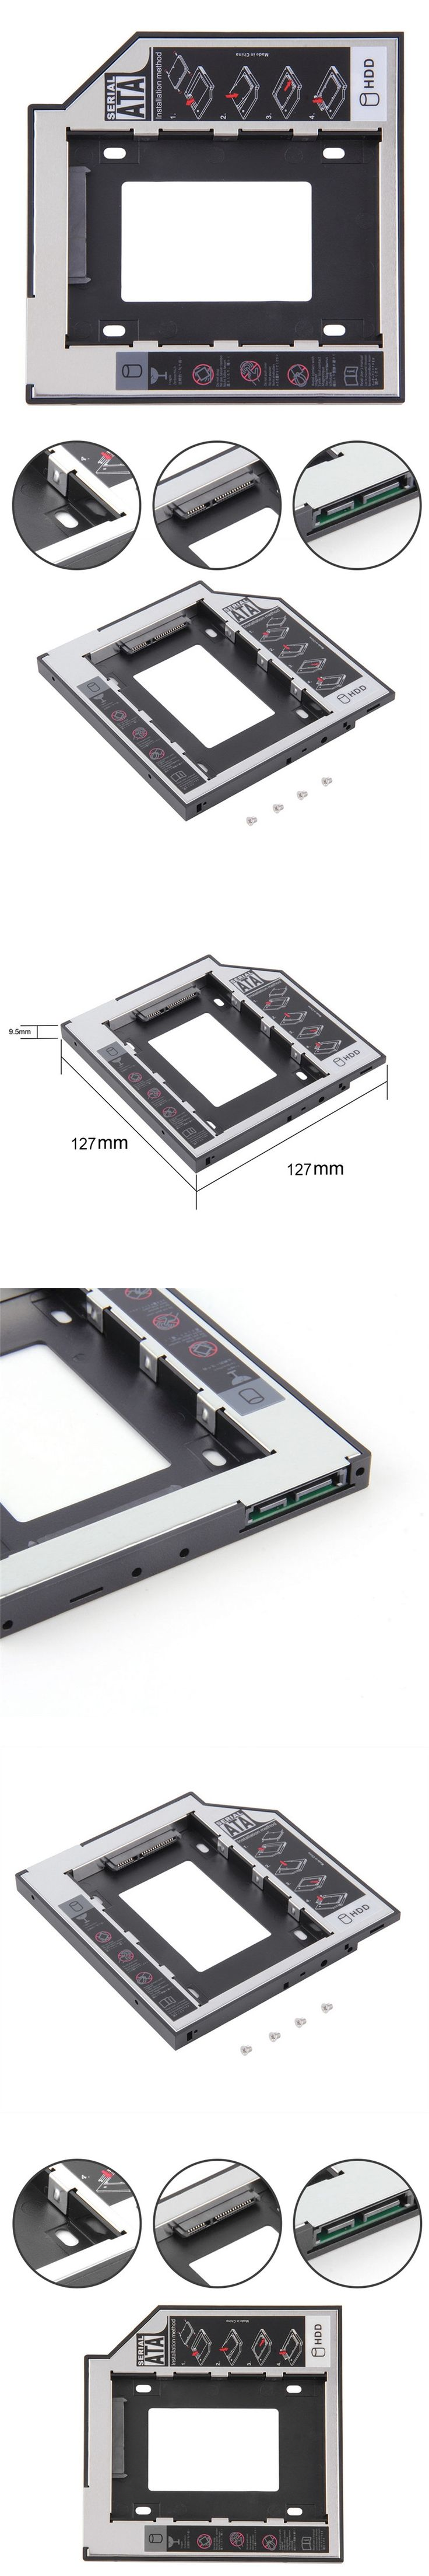 12.7mm SATA 2nd HDD Caddy for SSD Case Hard Disk Drive Enclosure Bay for ThinkPad E420 E425 E430 L410